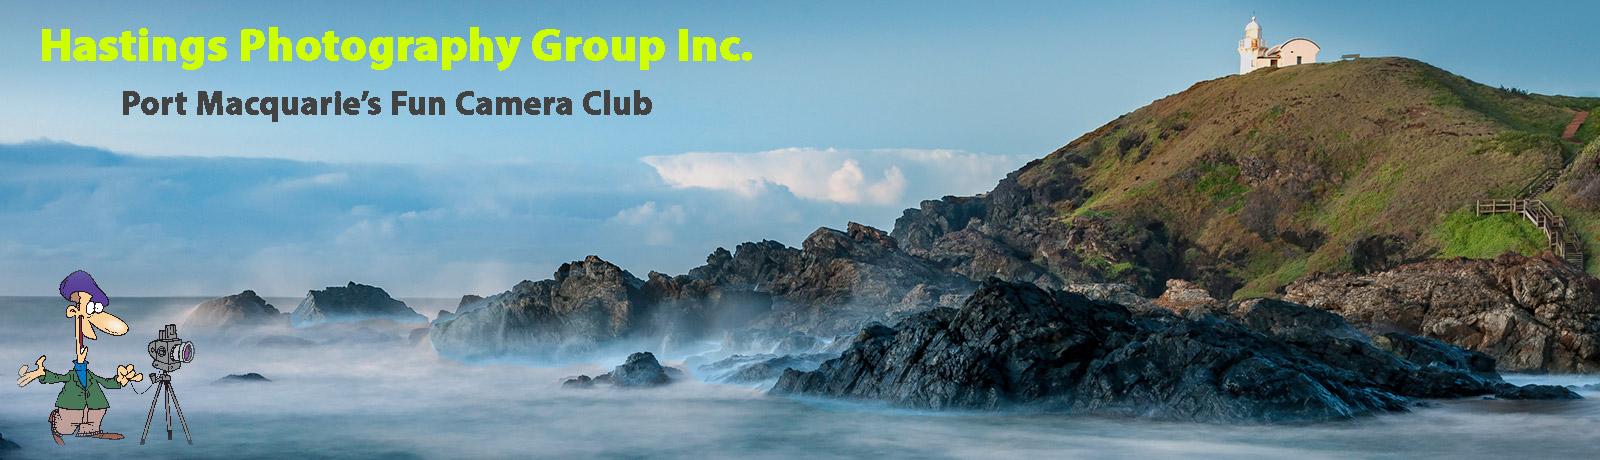 Hastings Photography Group